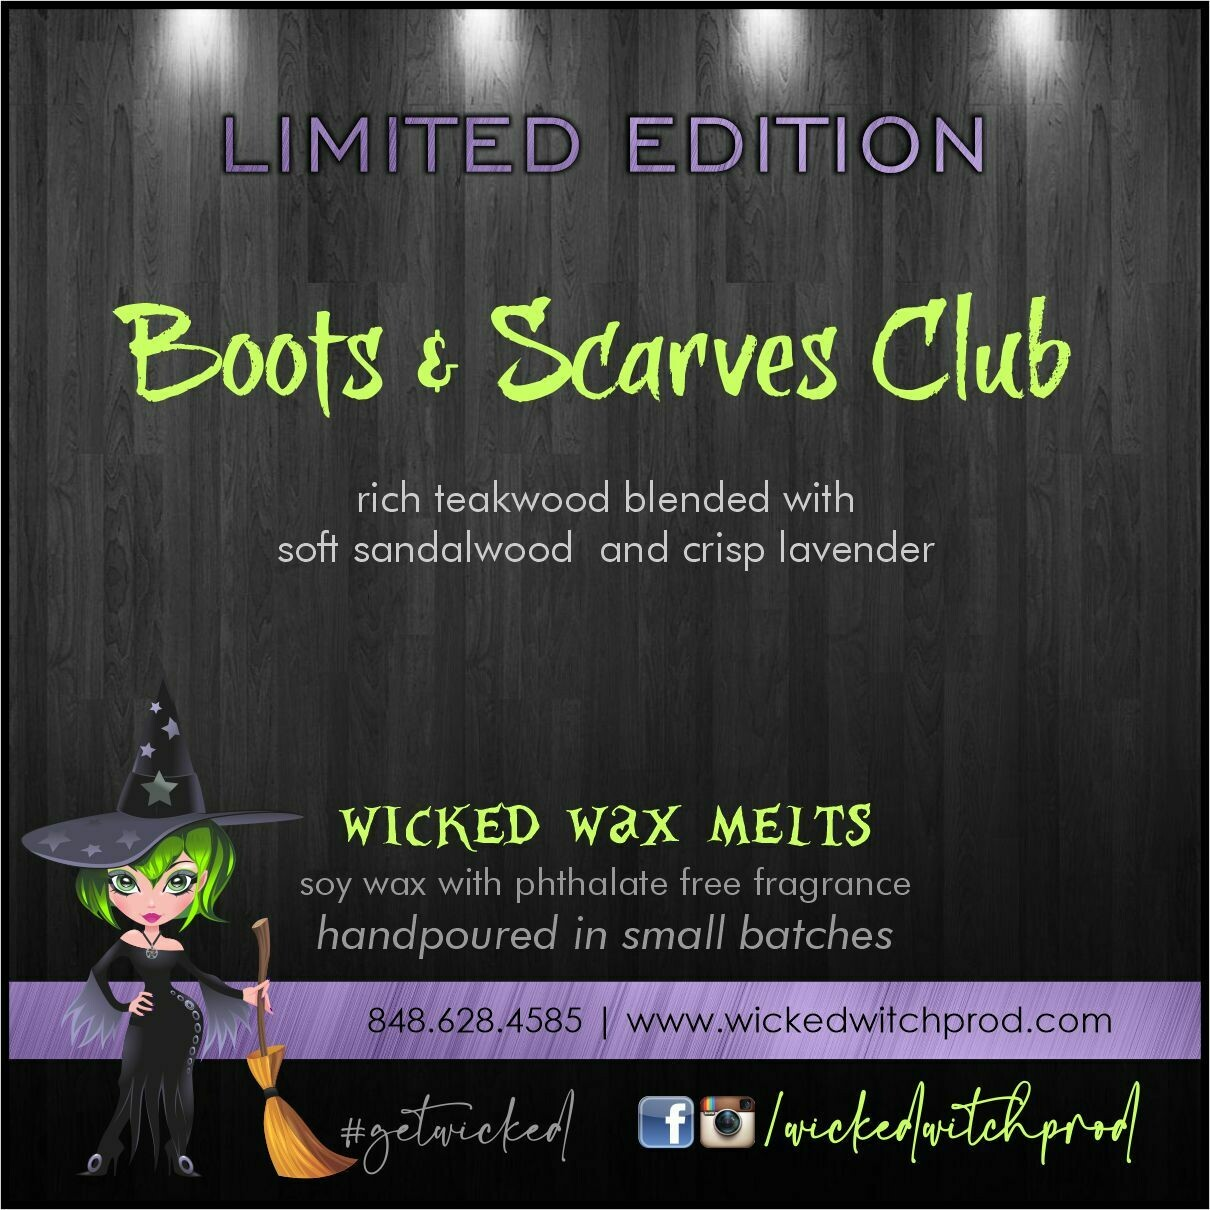 Boot & Scarves Club Wicked Wax Melts